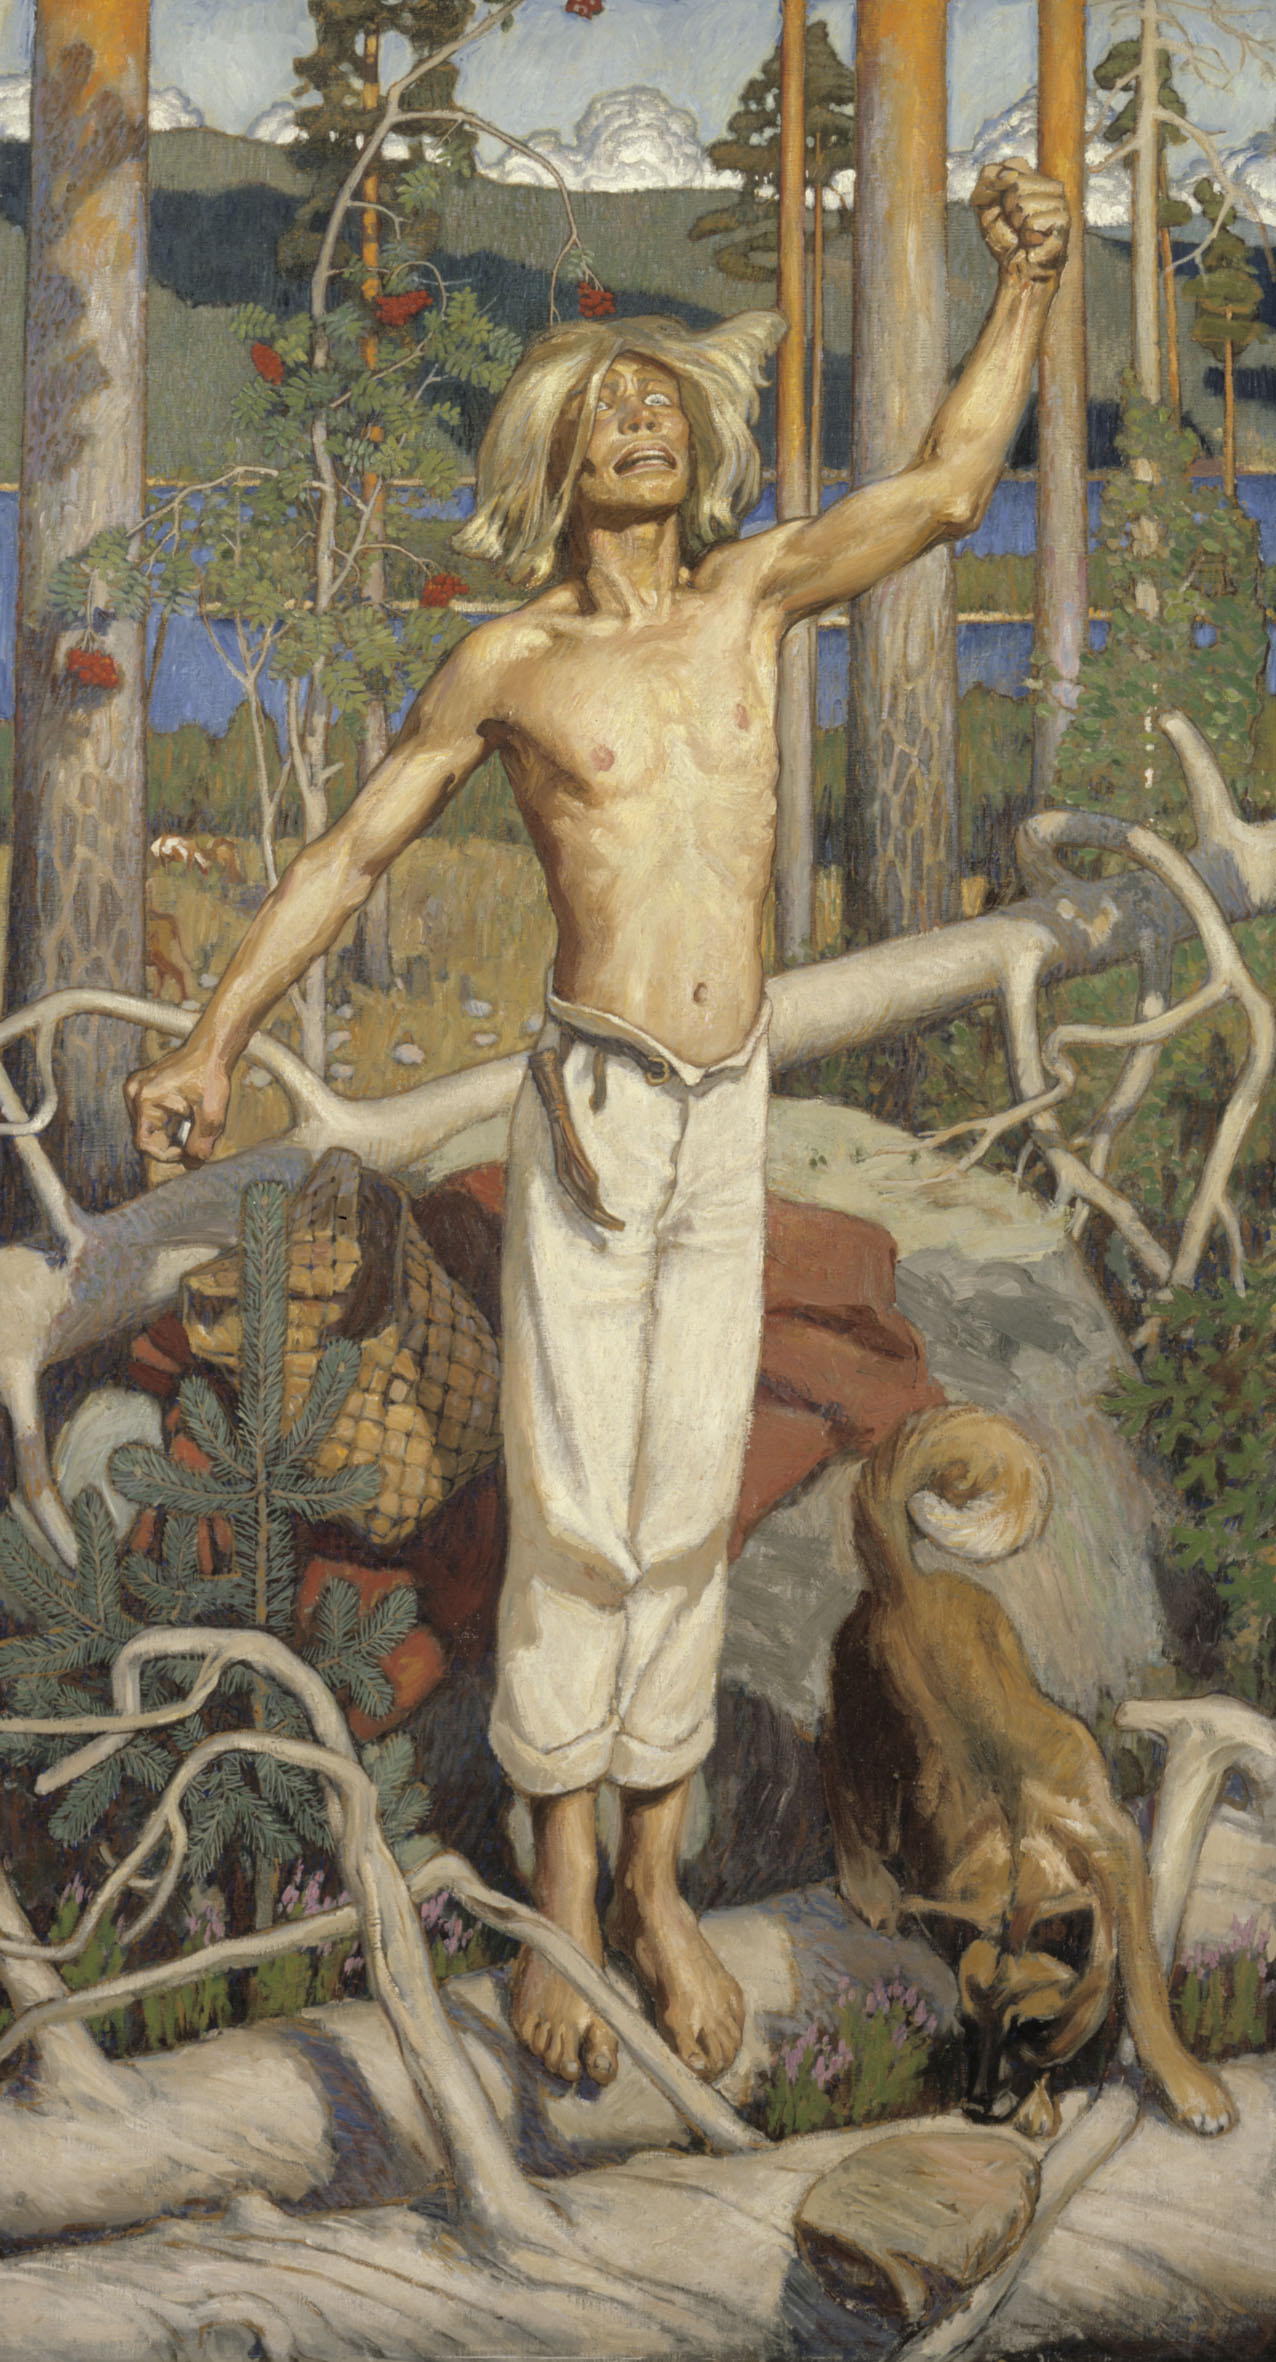 Painting by Akseli Gallen-Kallela († 7. März 1931 in Stockholm), depicting a scene from Kalevala, a Finnish epic poem. Wikimedia Commons: http://commons.wikimedia.org/wiki/Image:Gallen_Kallela_Kullervos_Curse.jpg?uselang=fi